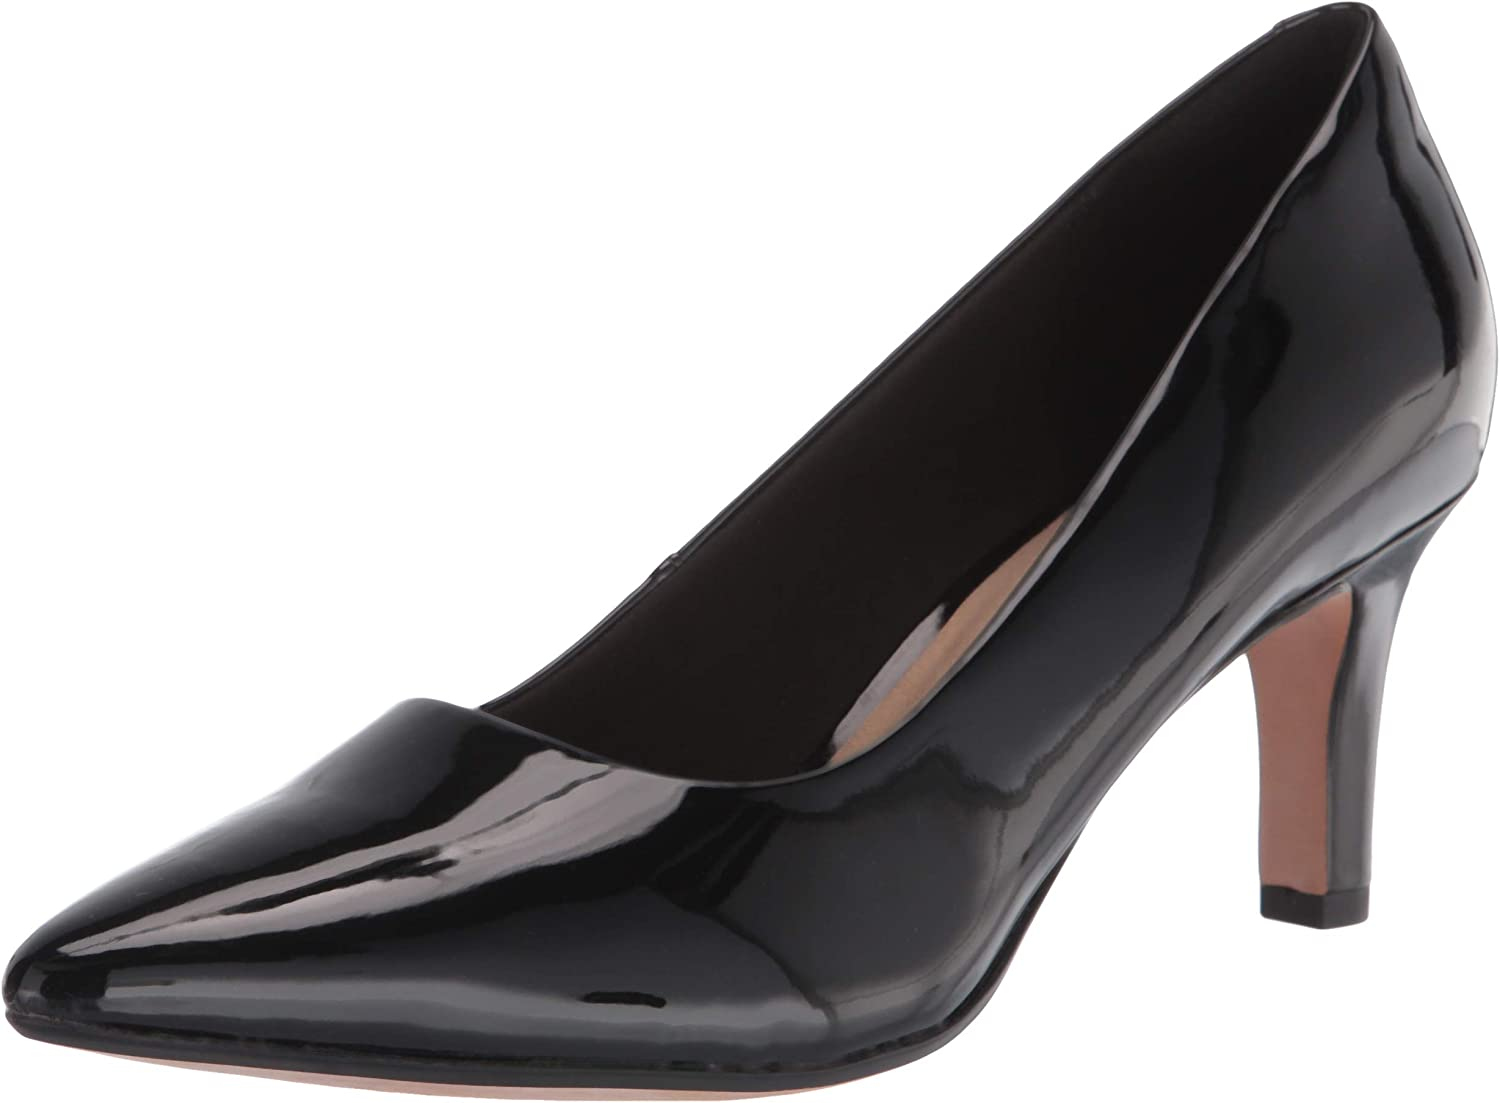 Clarks Women's Illeana Tulip Pump Cheap mail Free shipping anywhere in the nation order shopping